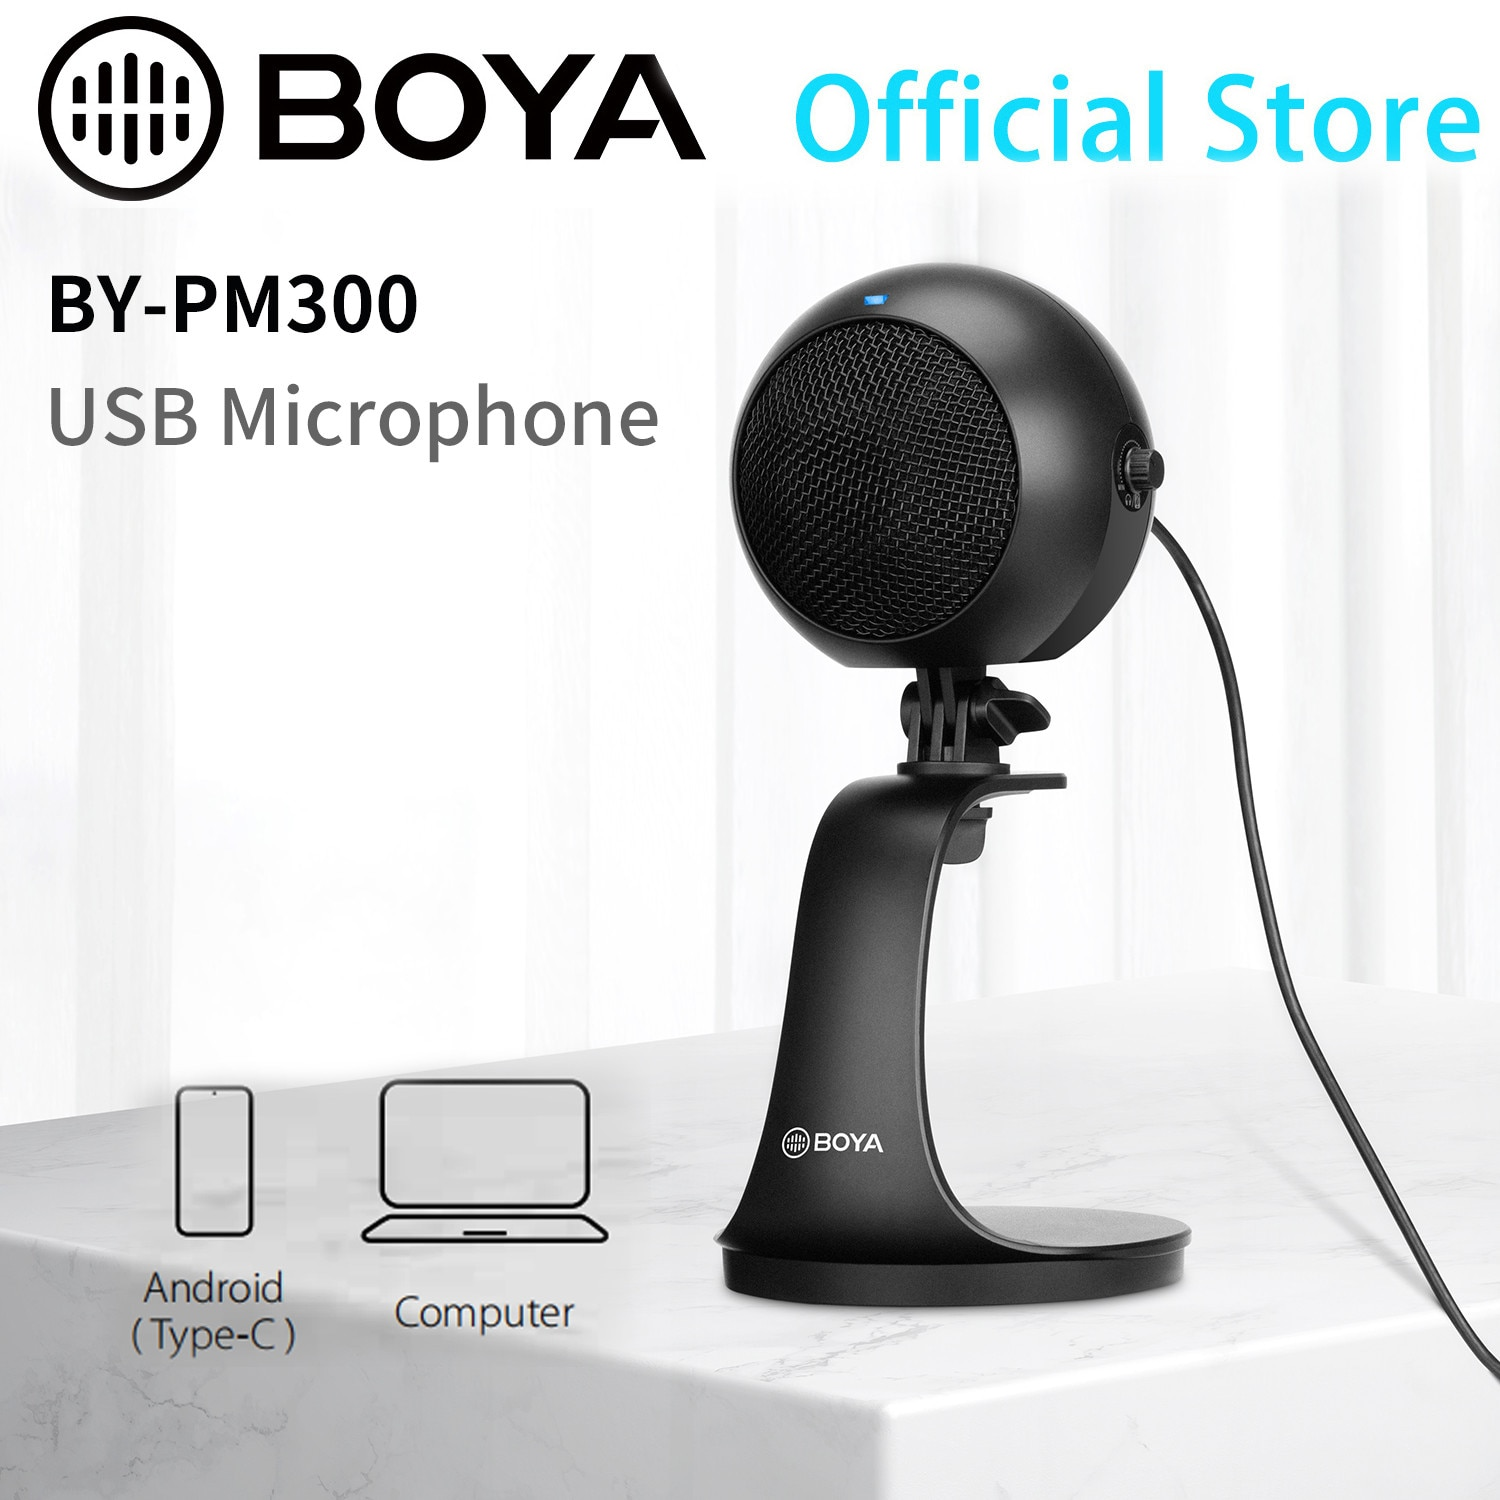 BOYA BY-PM300 Desktop USB Microphone with Android Windows/Mac computers for home-studio recording podcasting vocal performance